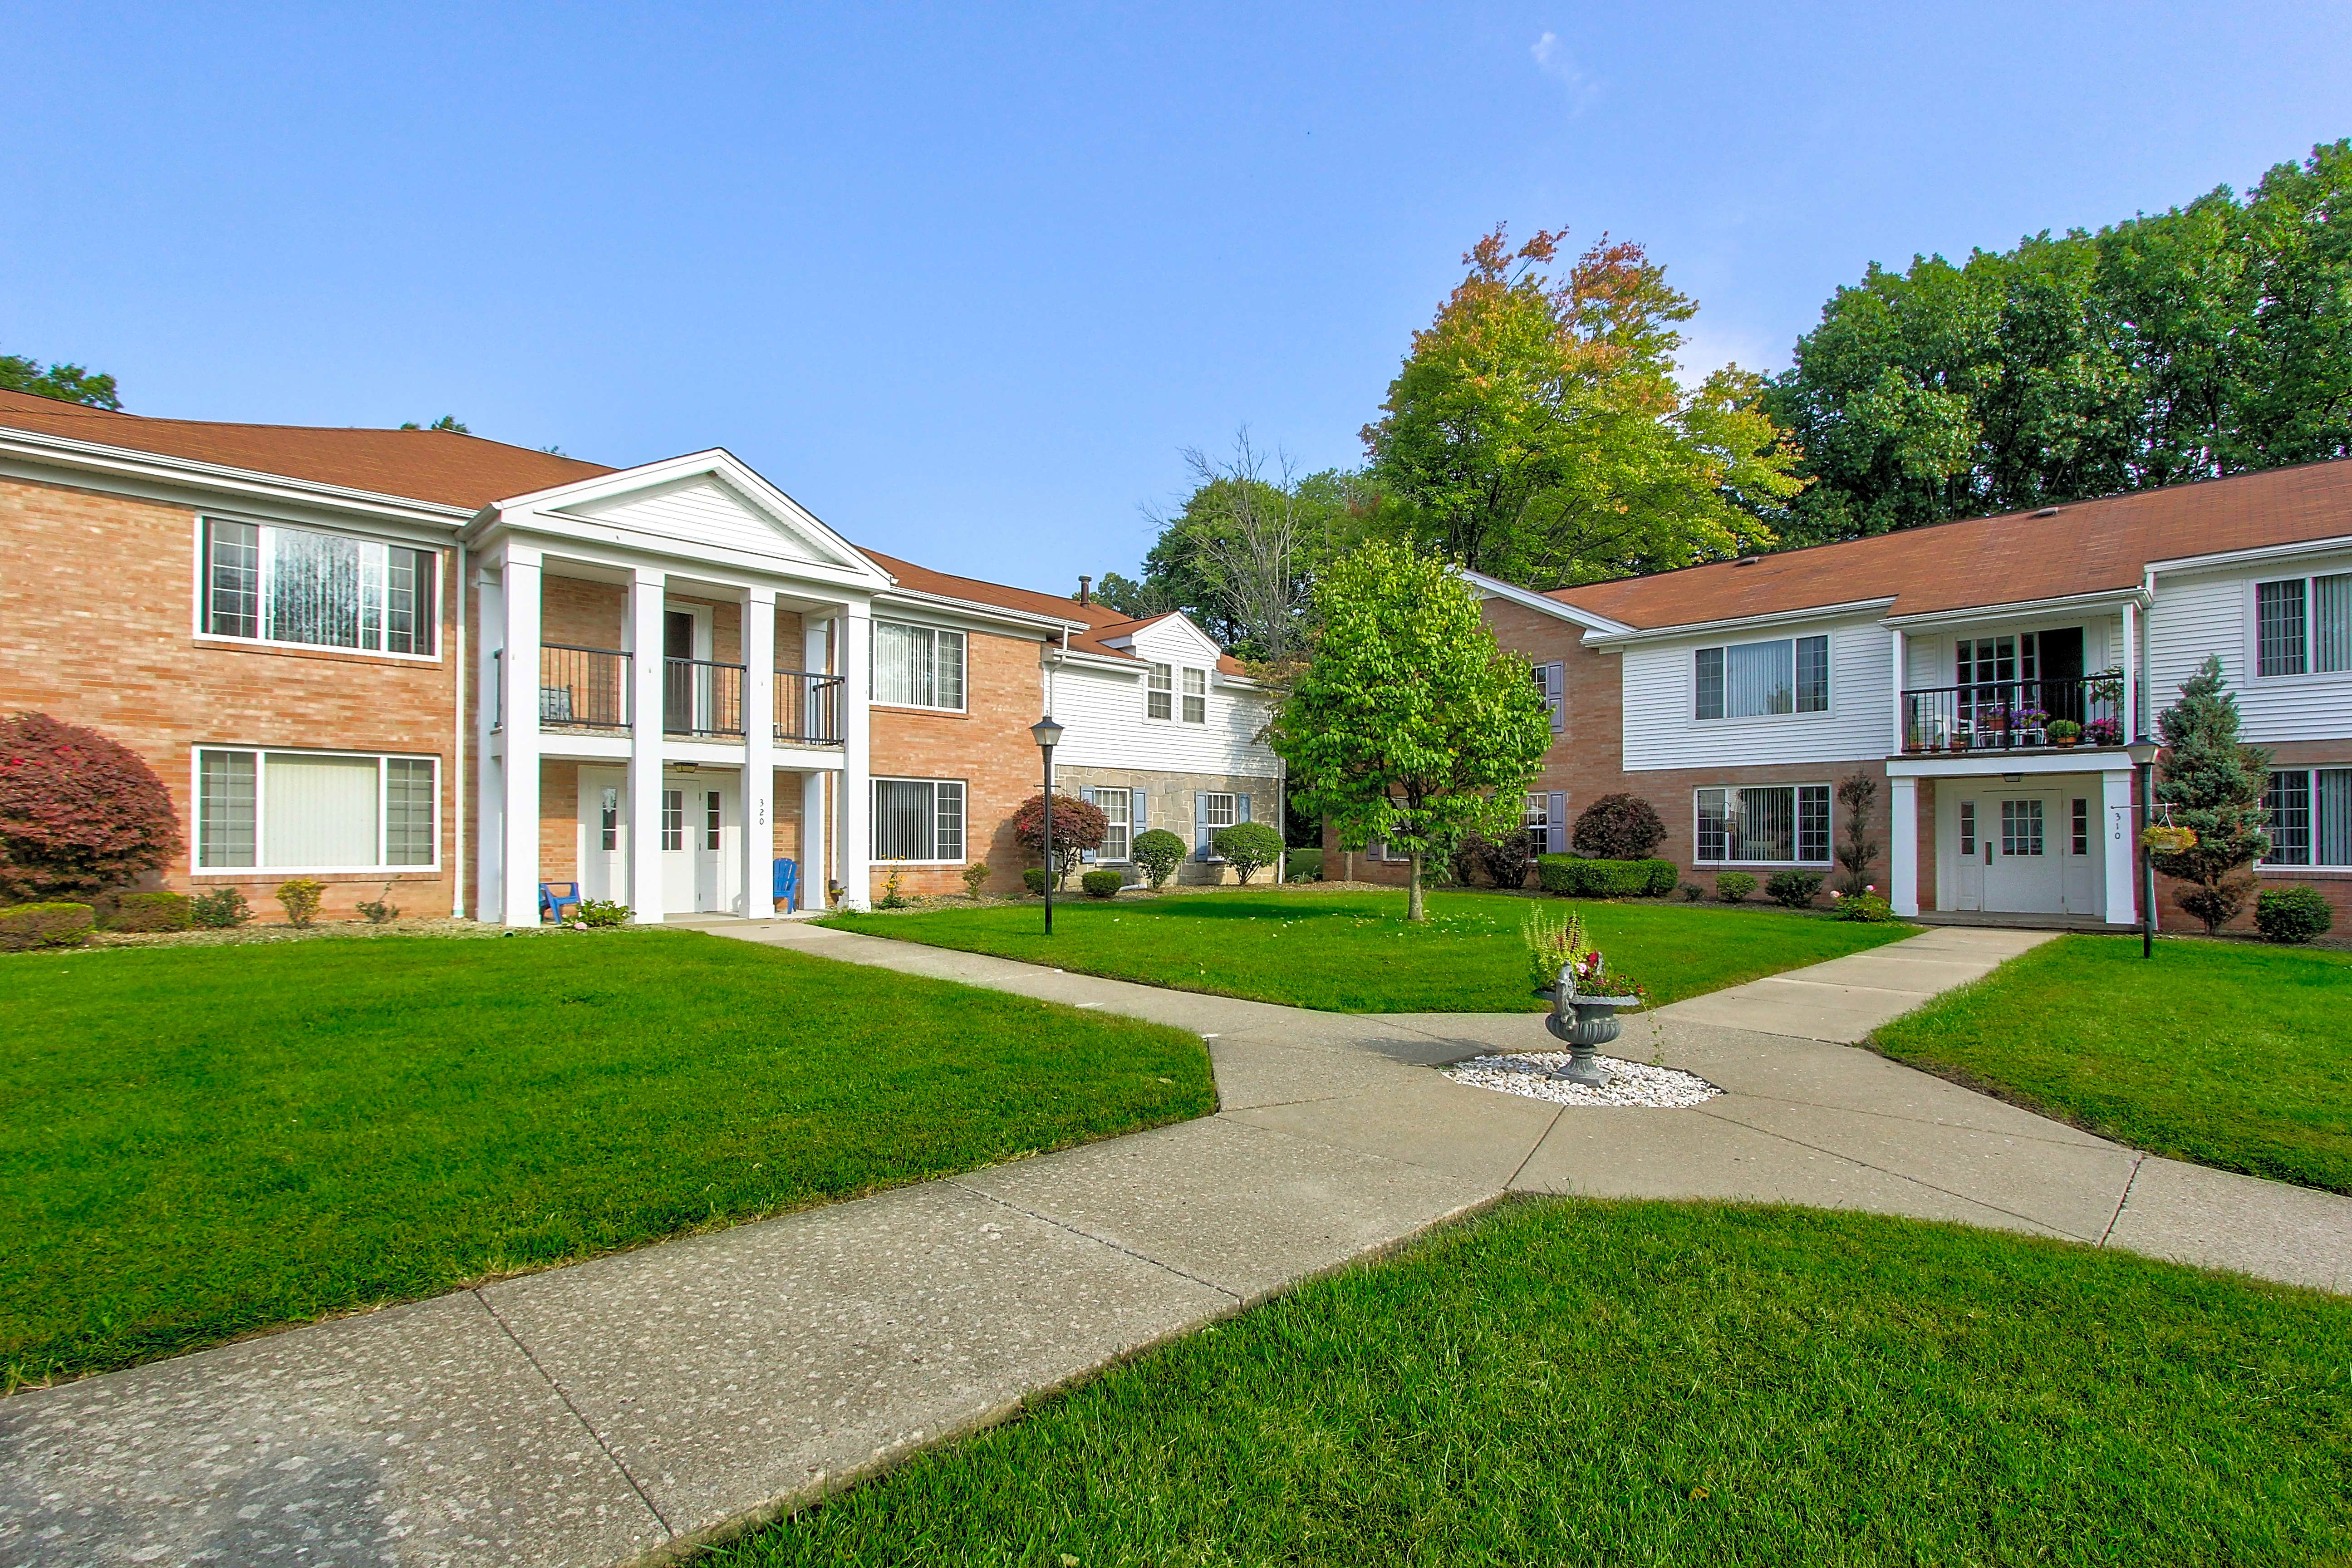 Apartments Near Thiel Hickory Arms/Penngrove Village for Thiel College Students in Greenville, PA